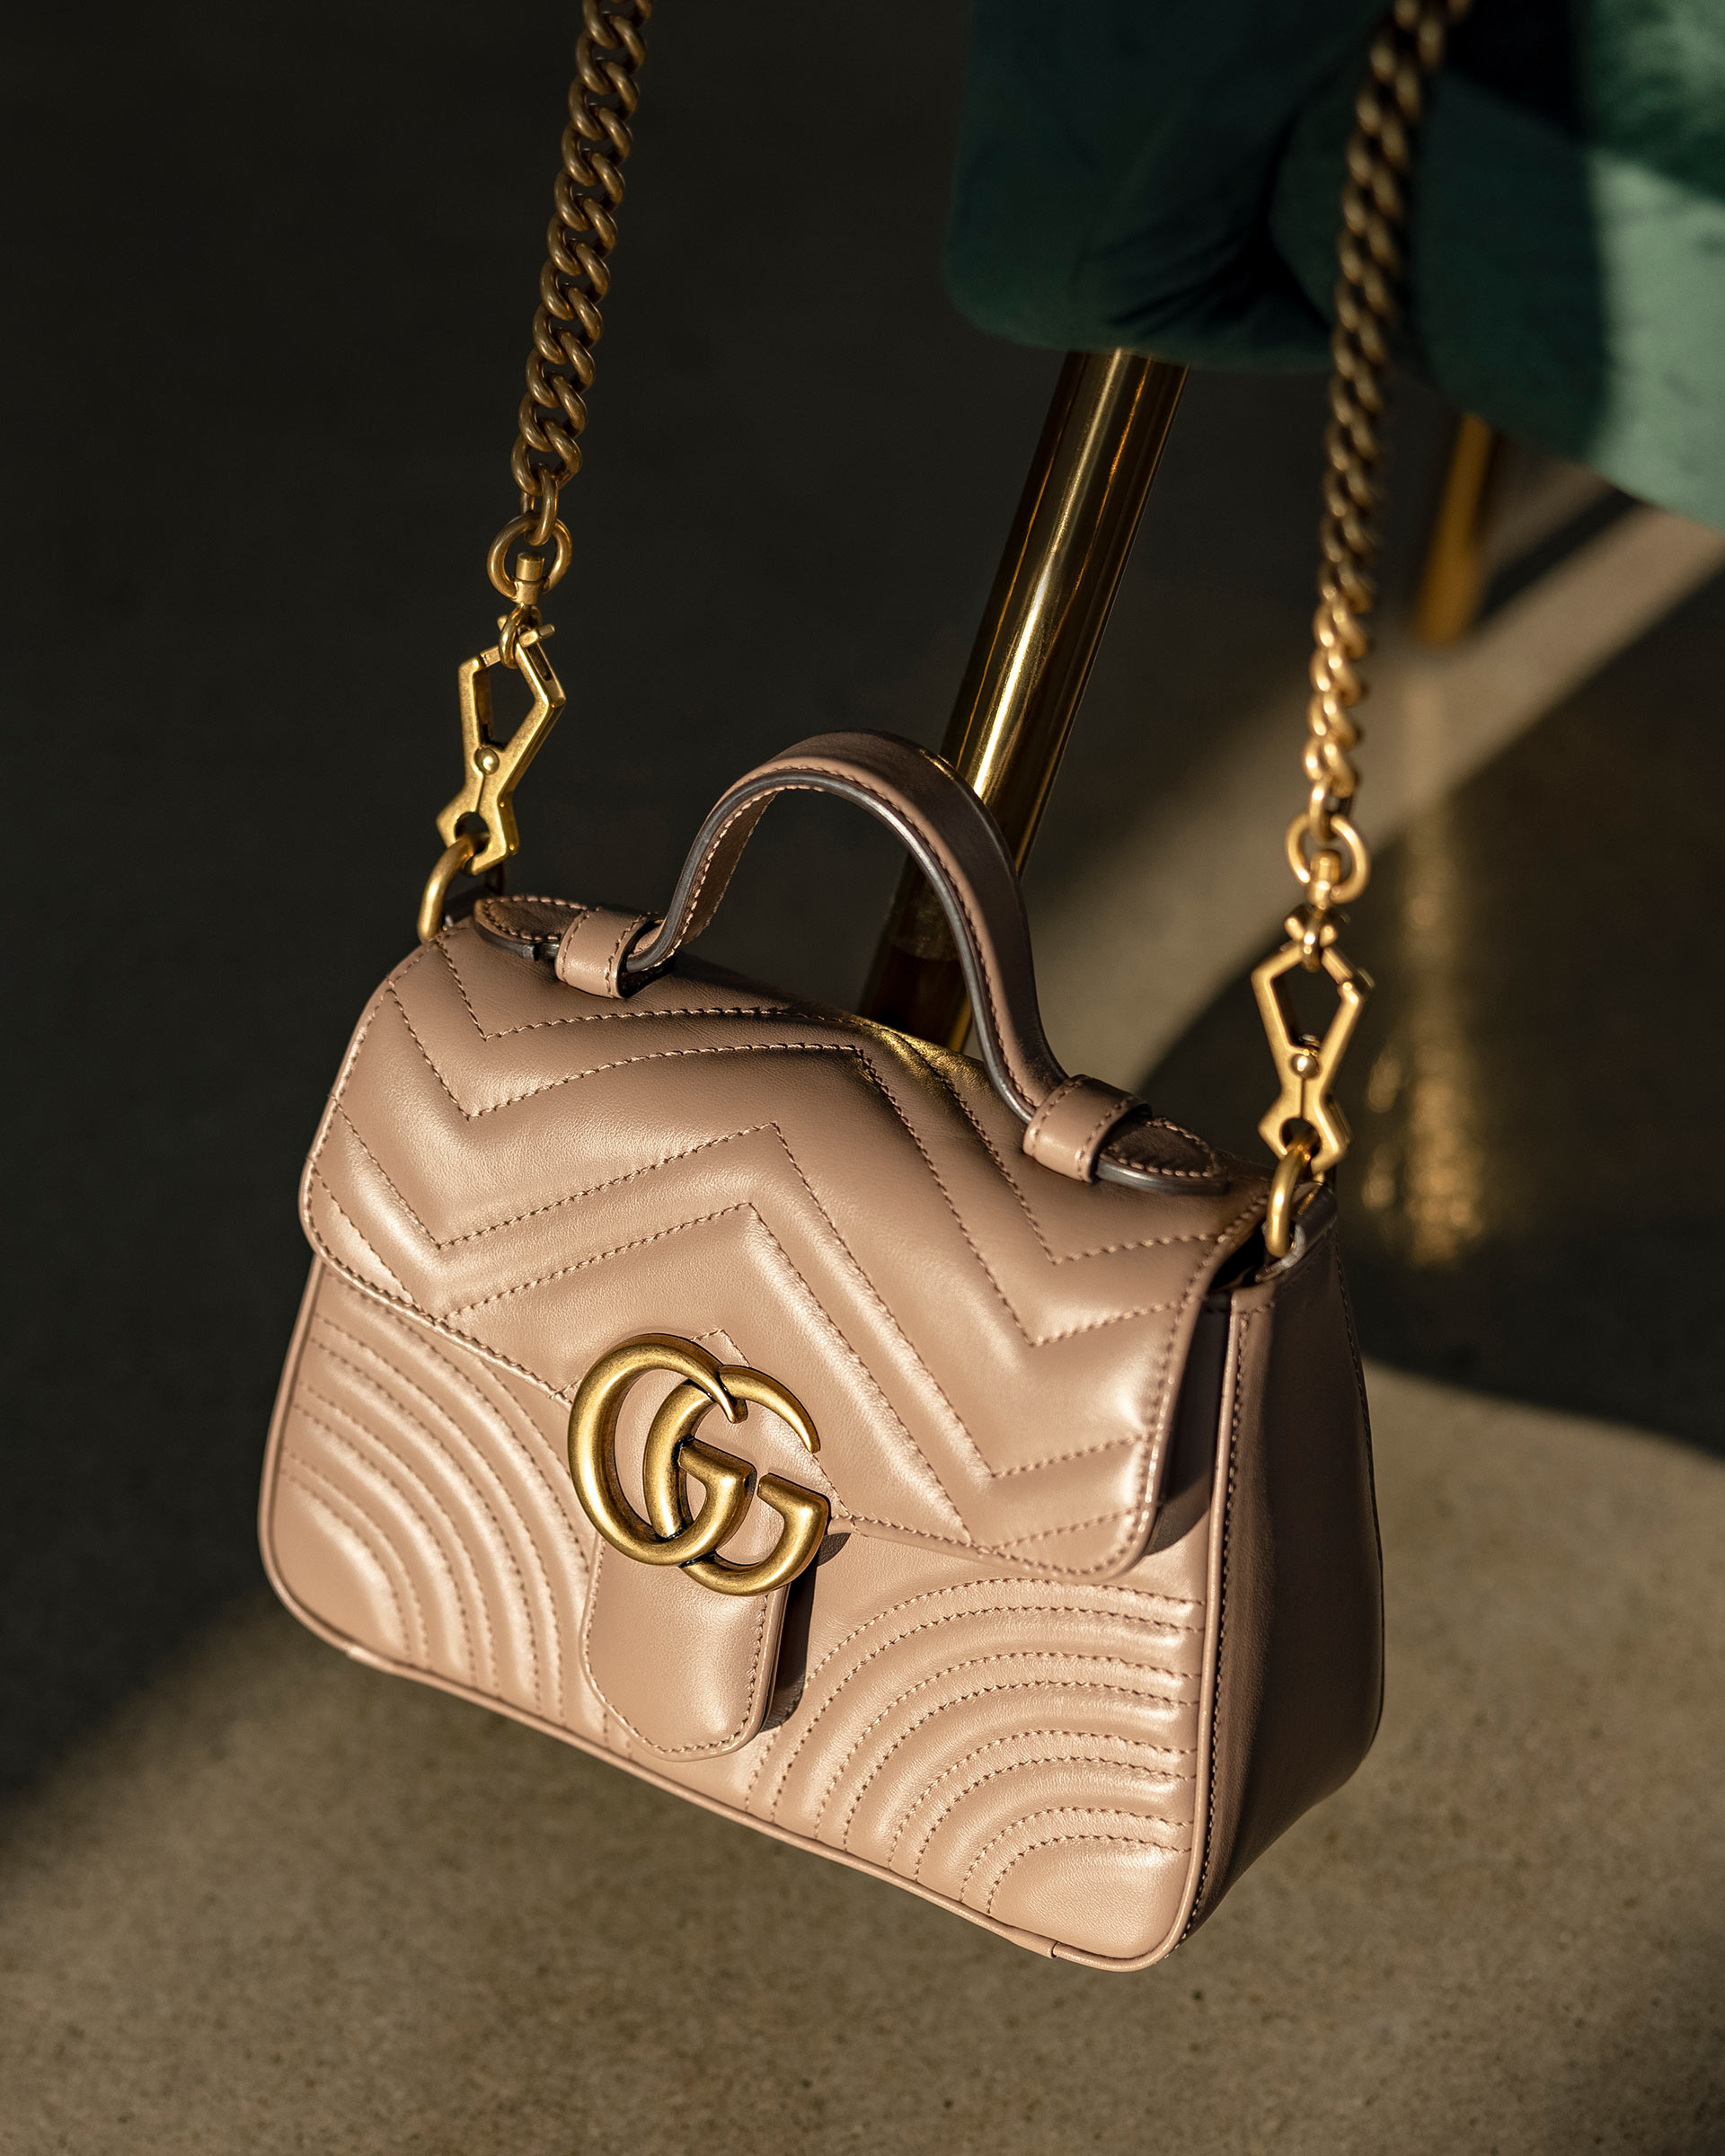 Lifestyle image of Authentic Gucci Marmont Top Handle Bag in beige at FASHIONPHILE